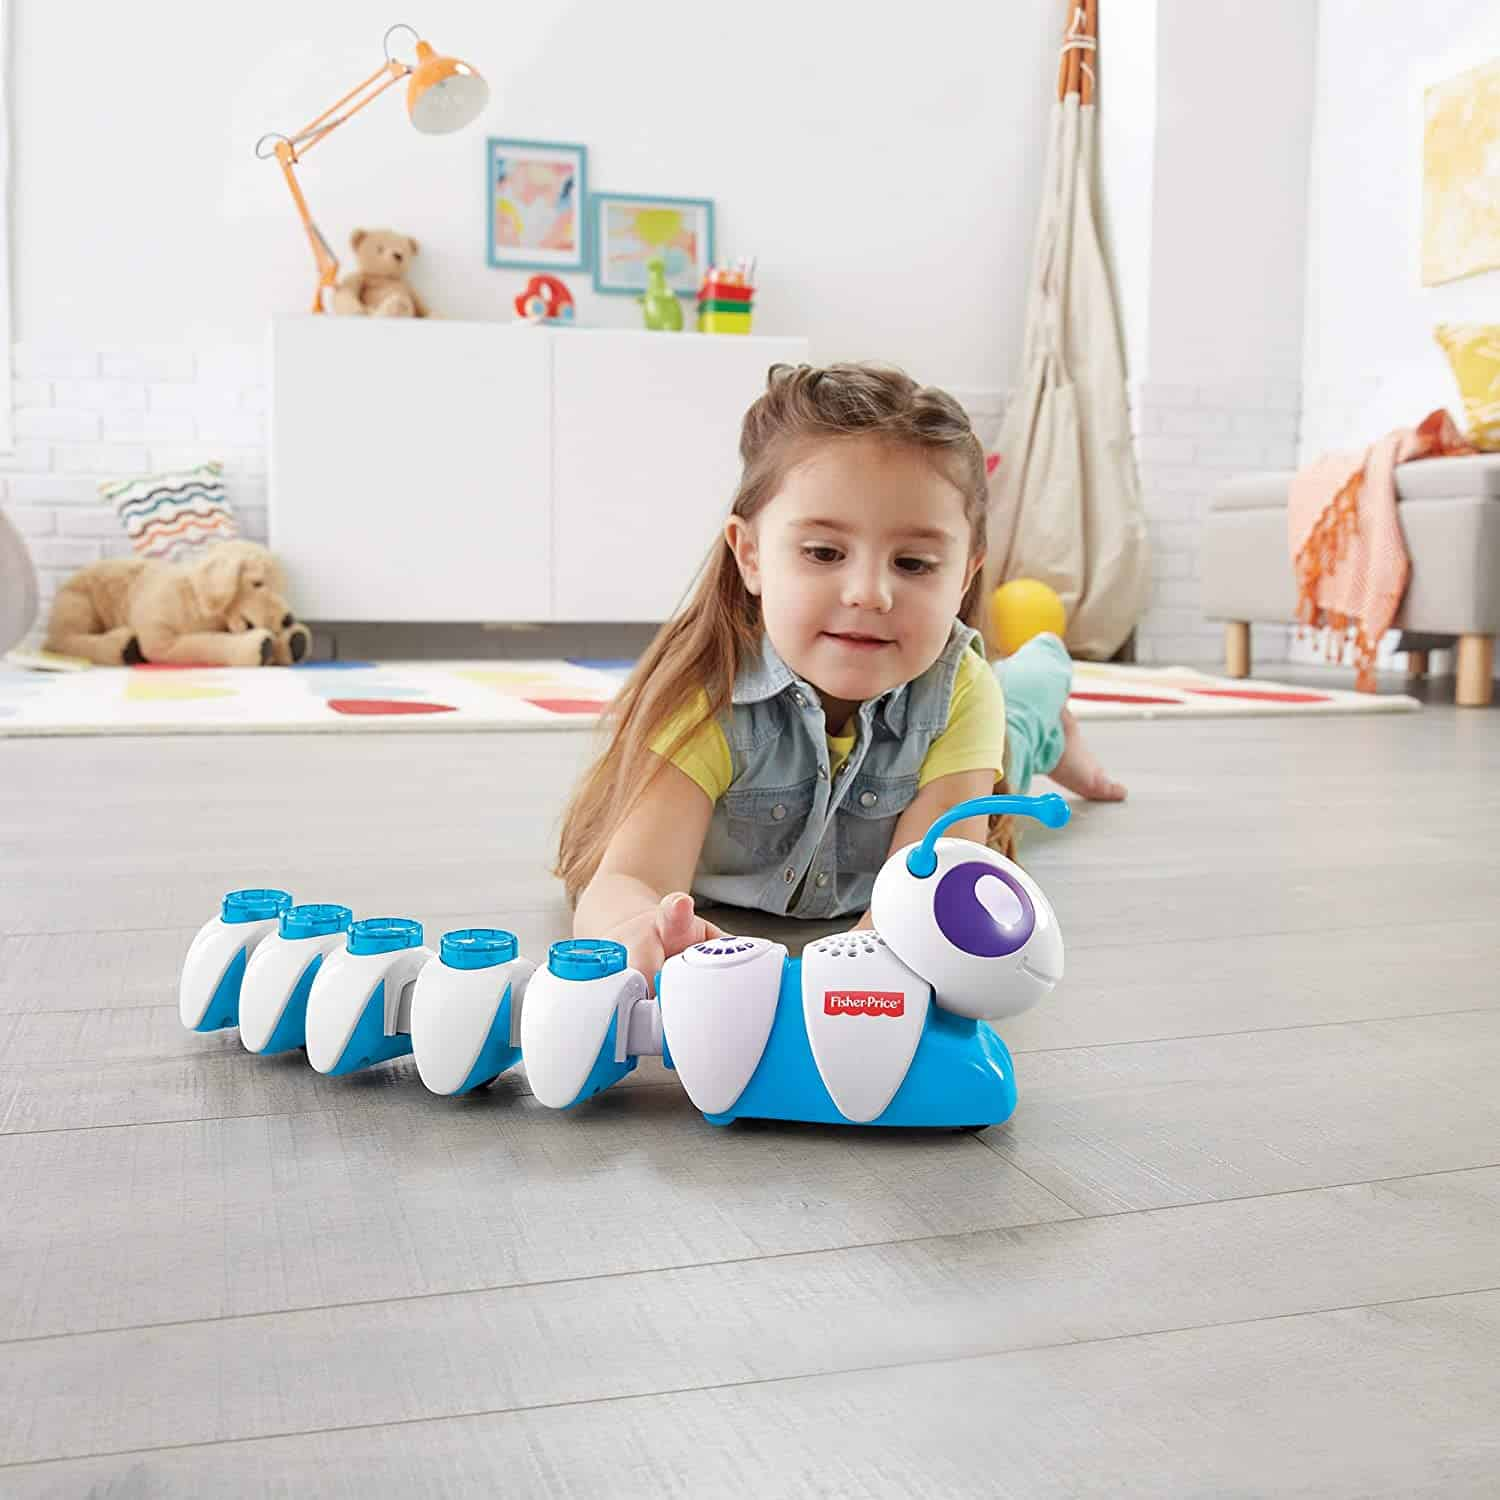 Fisher Price Code-a-pillar: Co-de-rups